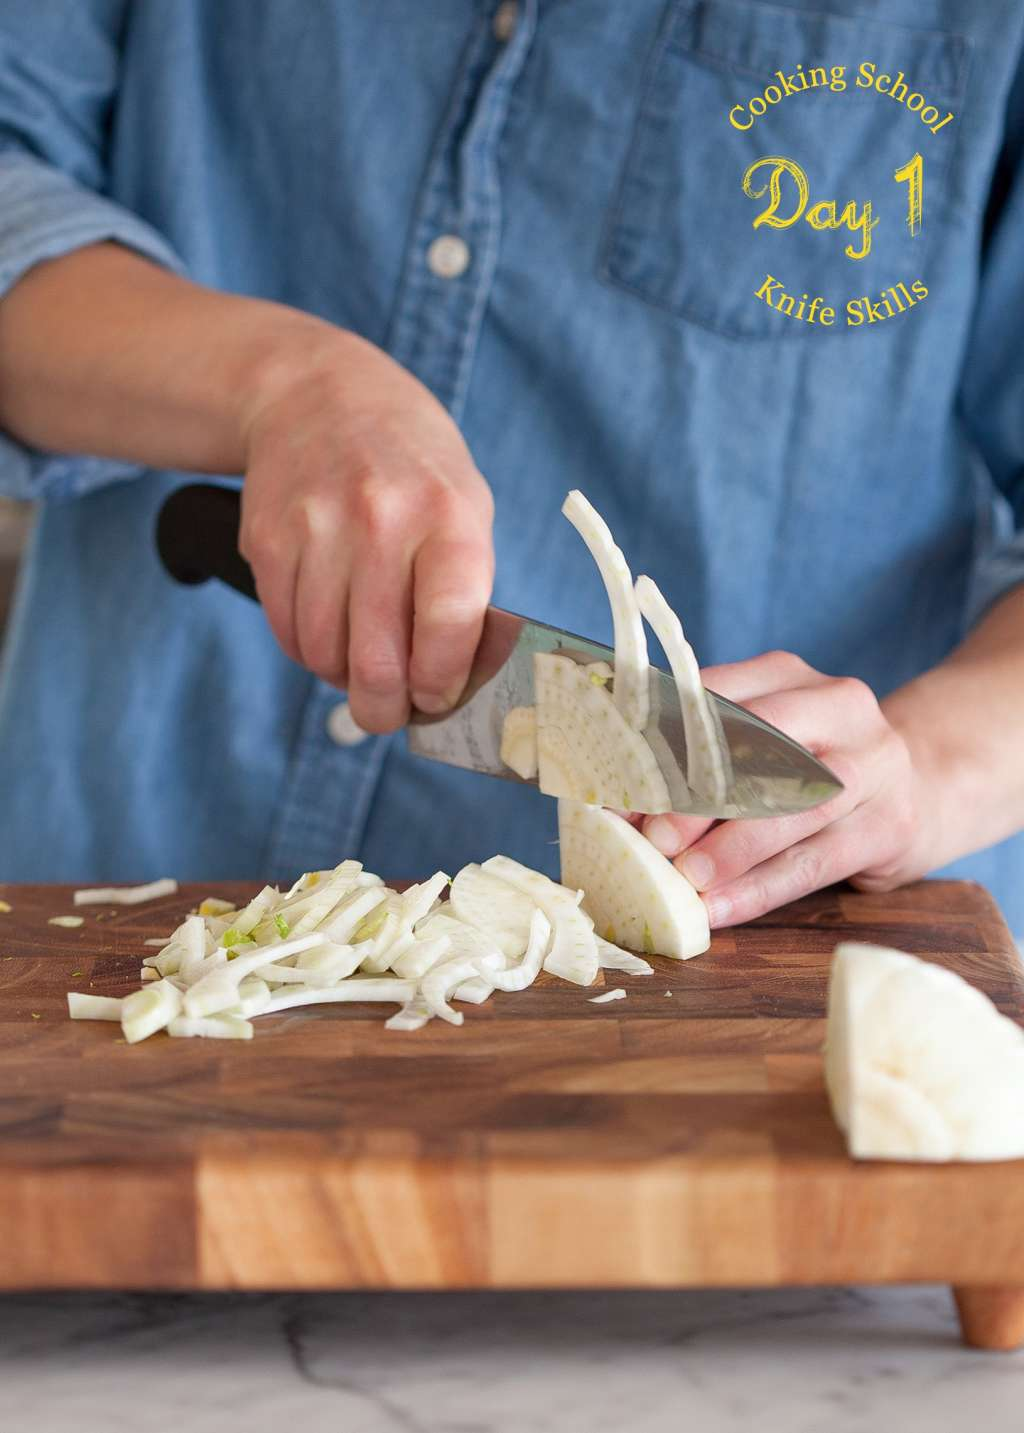 Cooking School Day 1: Knife Skills   Kitchn